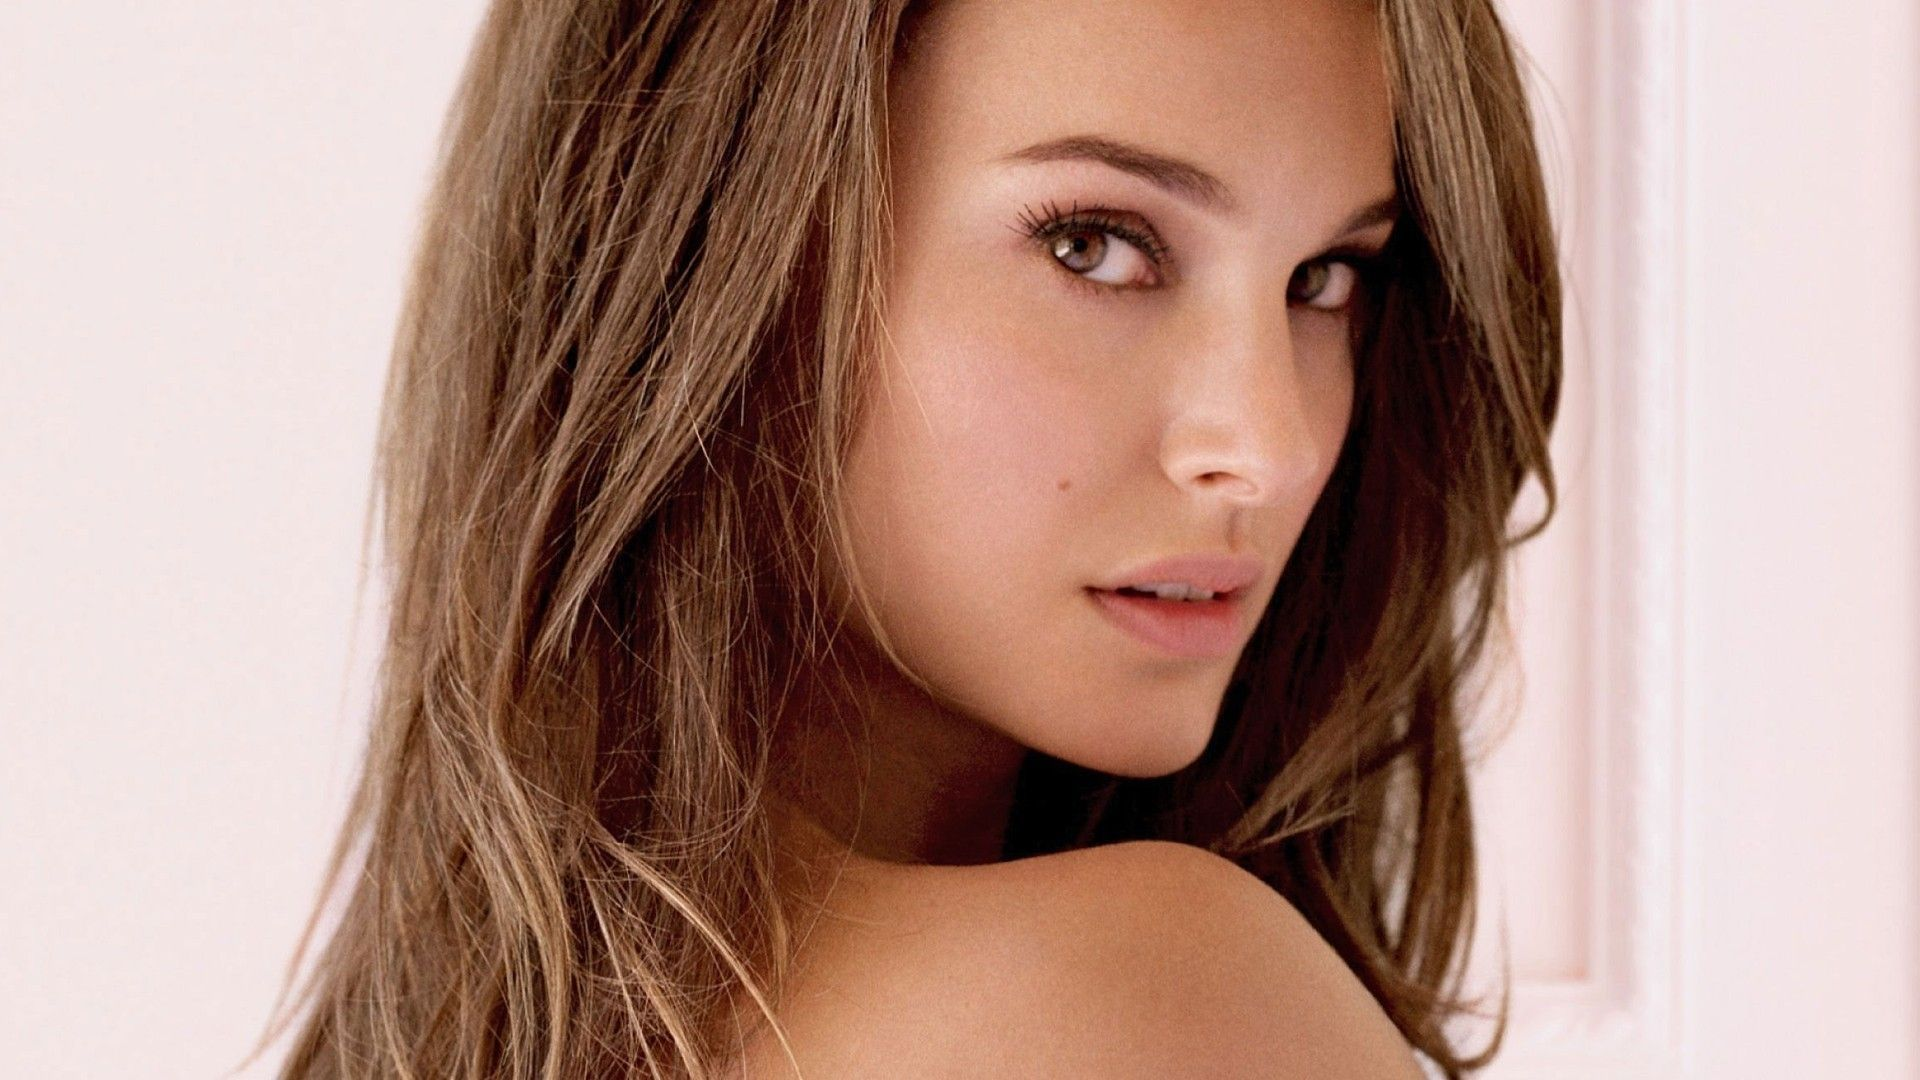 Natalie-Portman-1920x1080-Need-iPhone-S-Plus-Background-for-IPhoneSPlus-Follow-wallpaper-wpc9007912